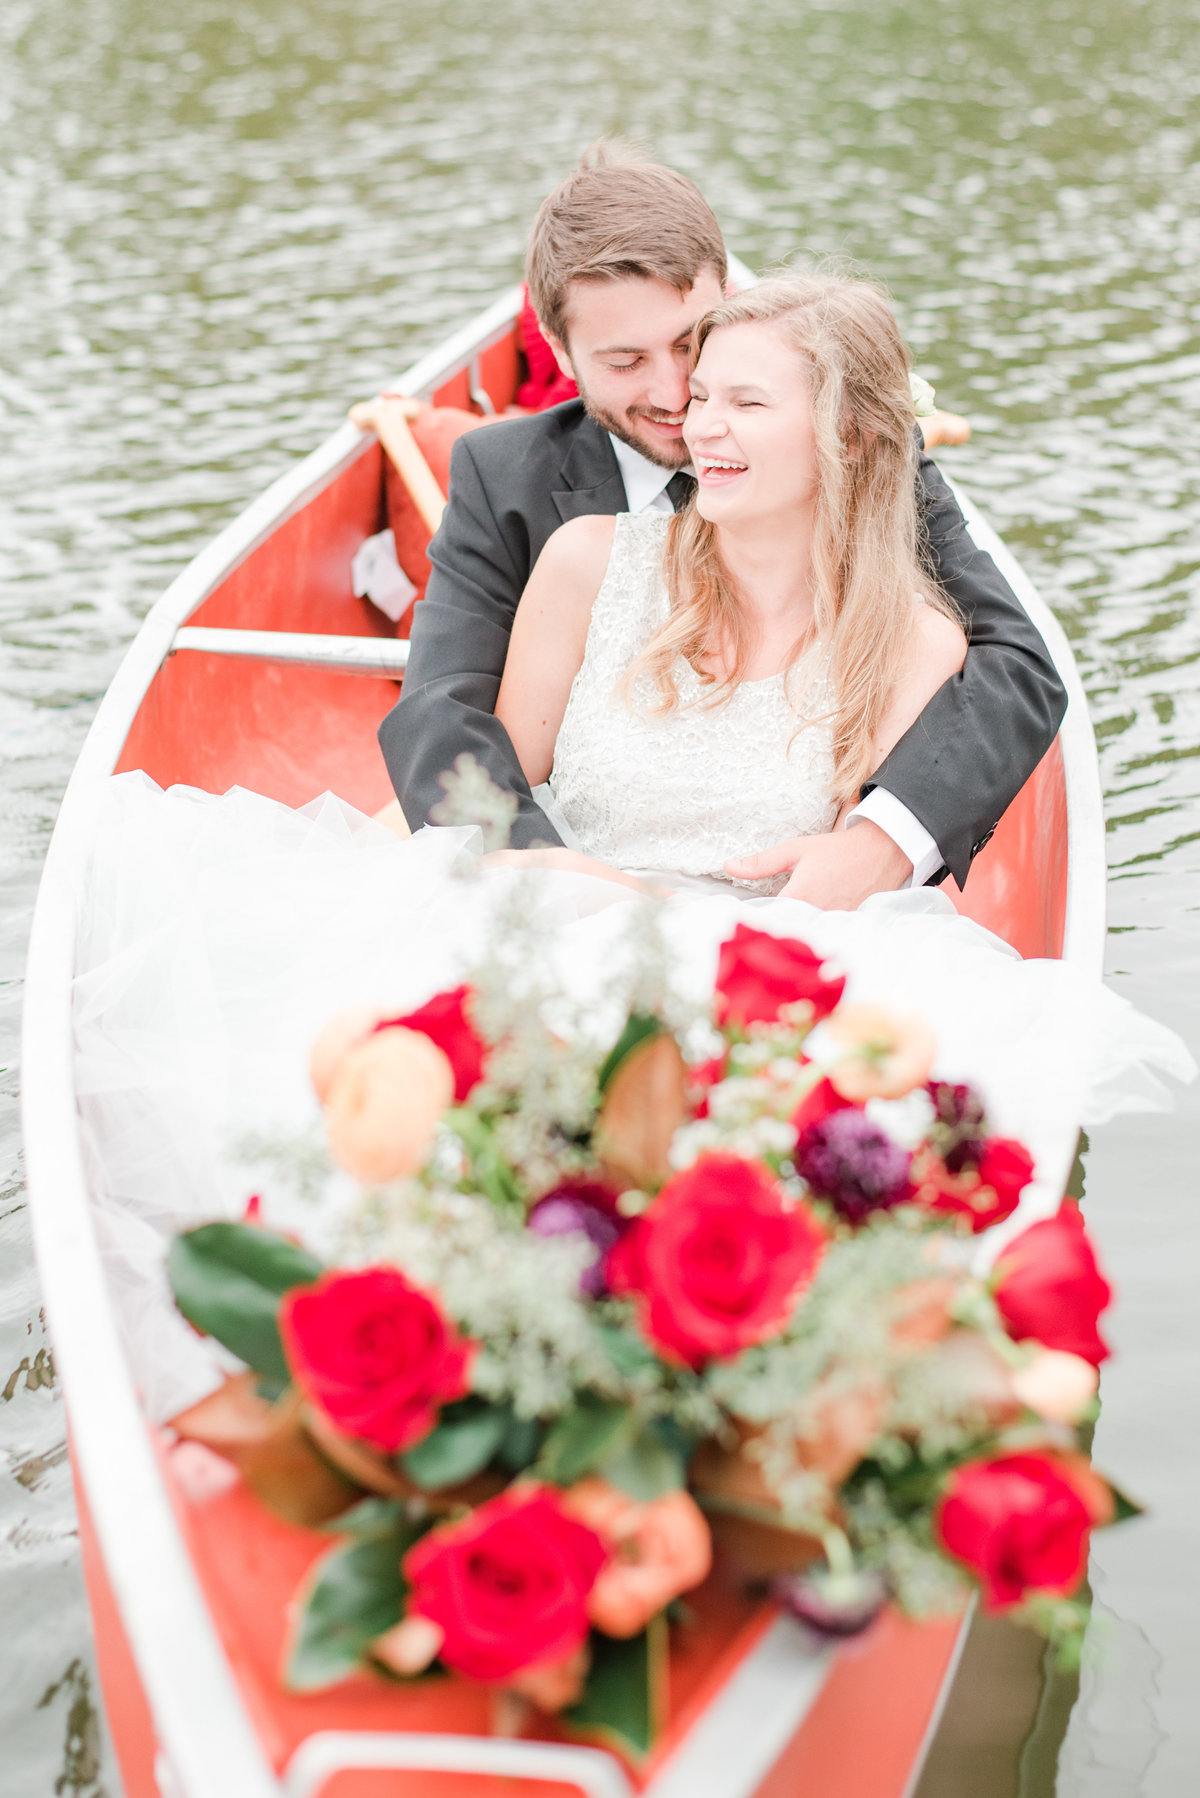 Cait Potter Creative LLC Final Version Canoe Adventure Wedding -8